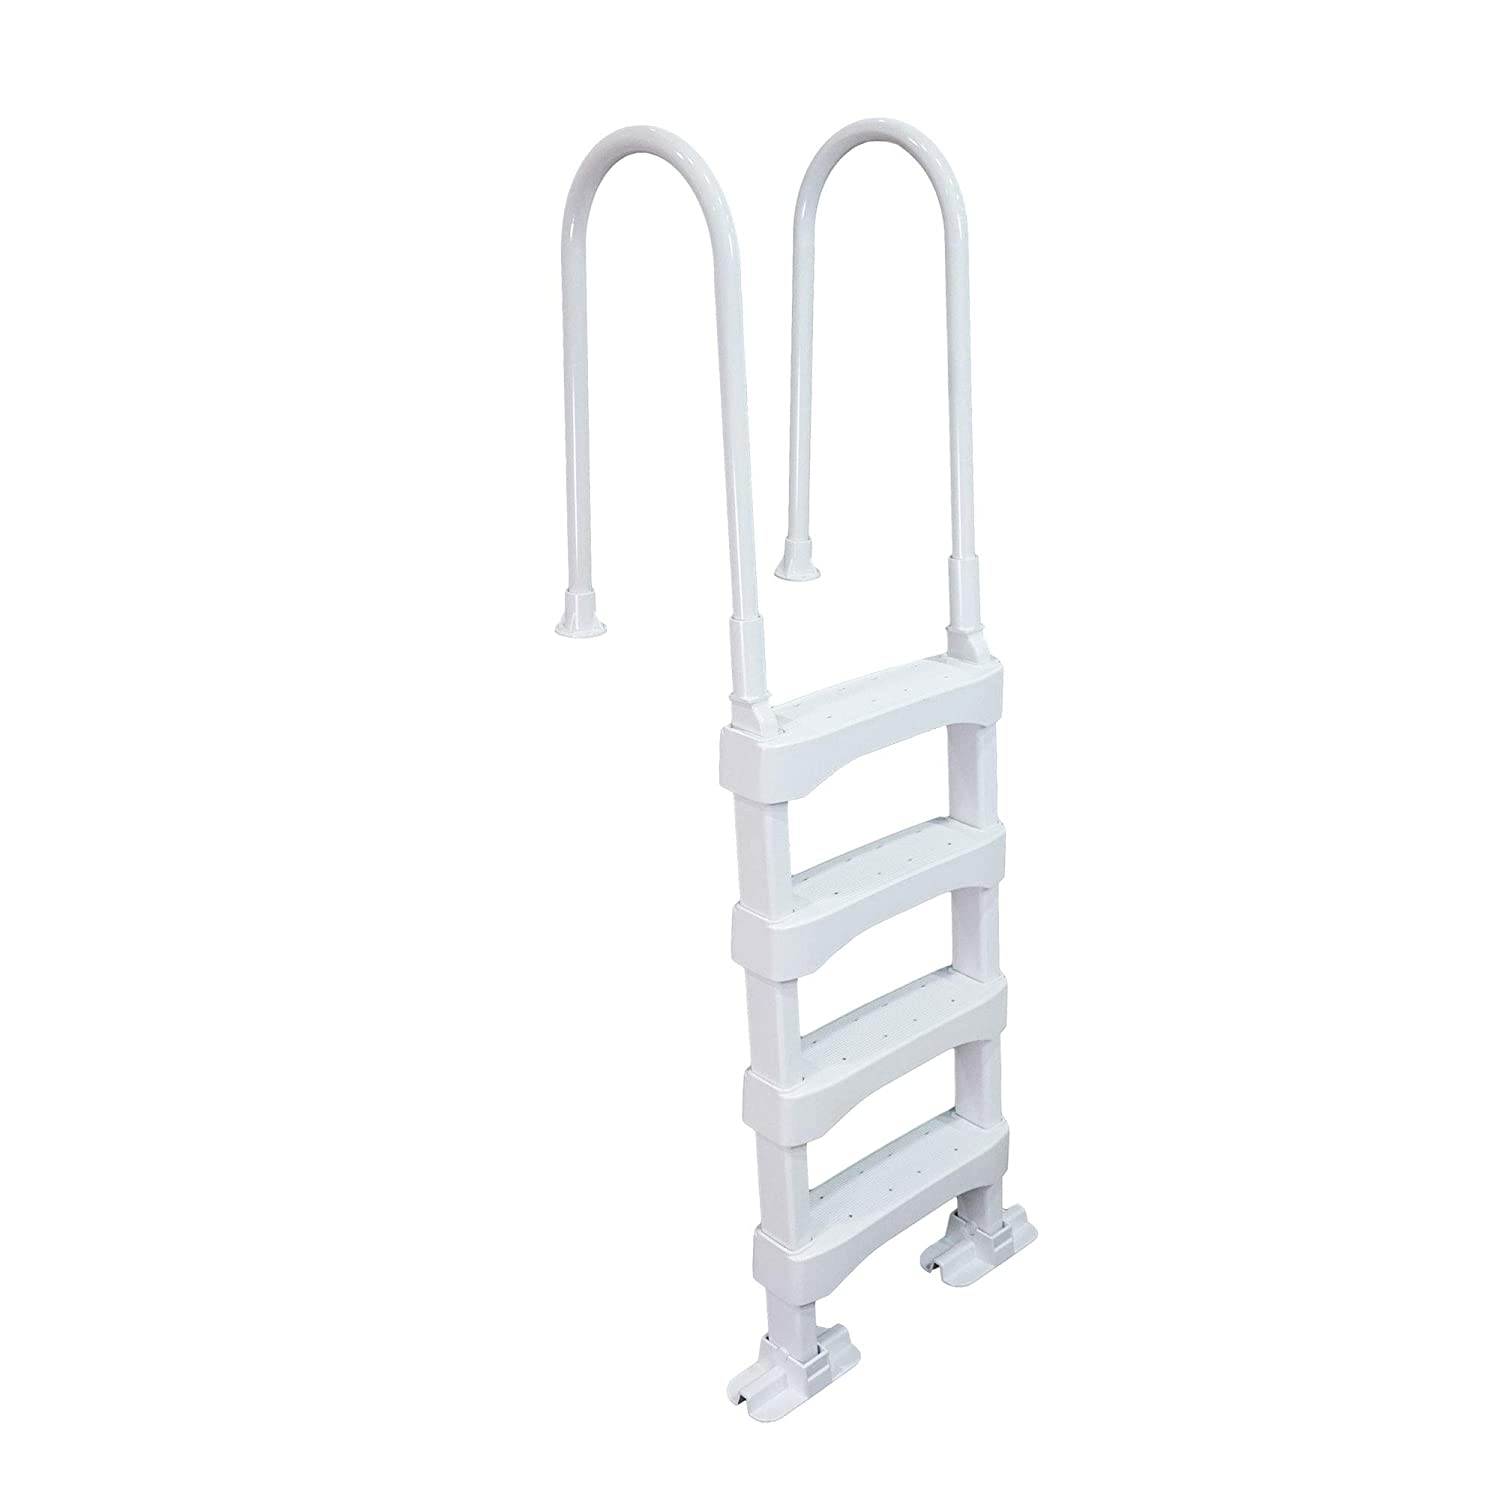 Vinyl Works SLD2 Heavy-Duty Resin Pool Step Ladder for 60 Inch Above Ground